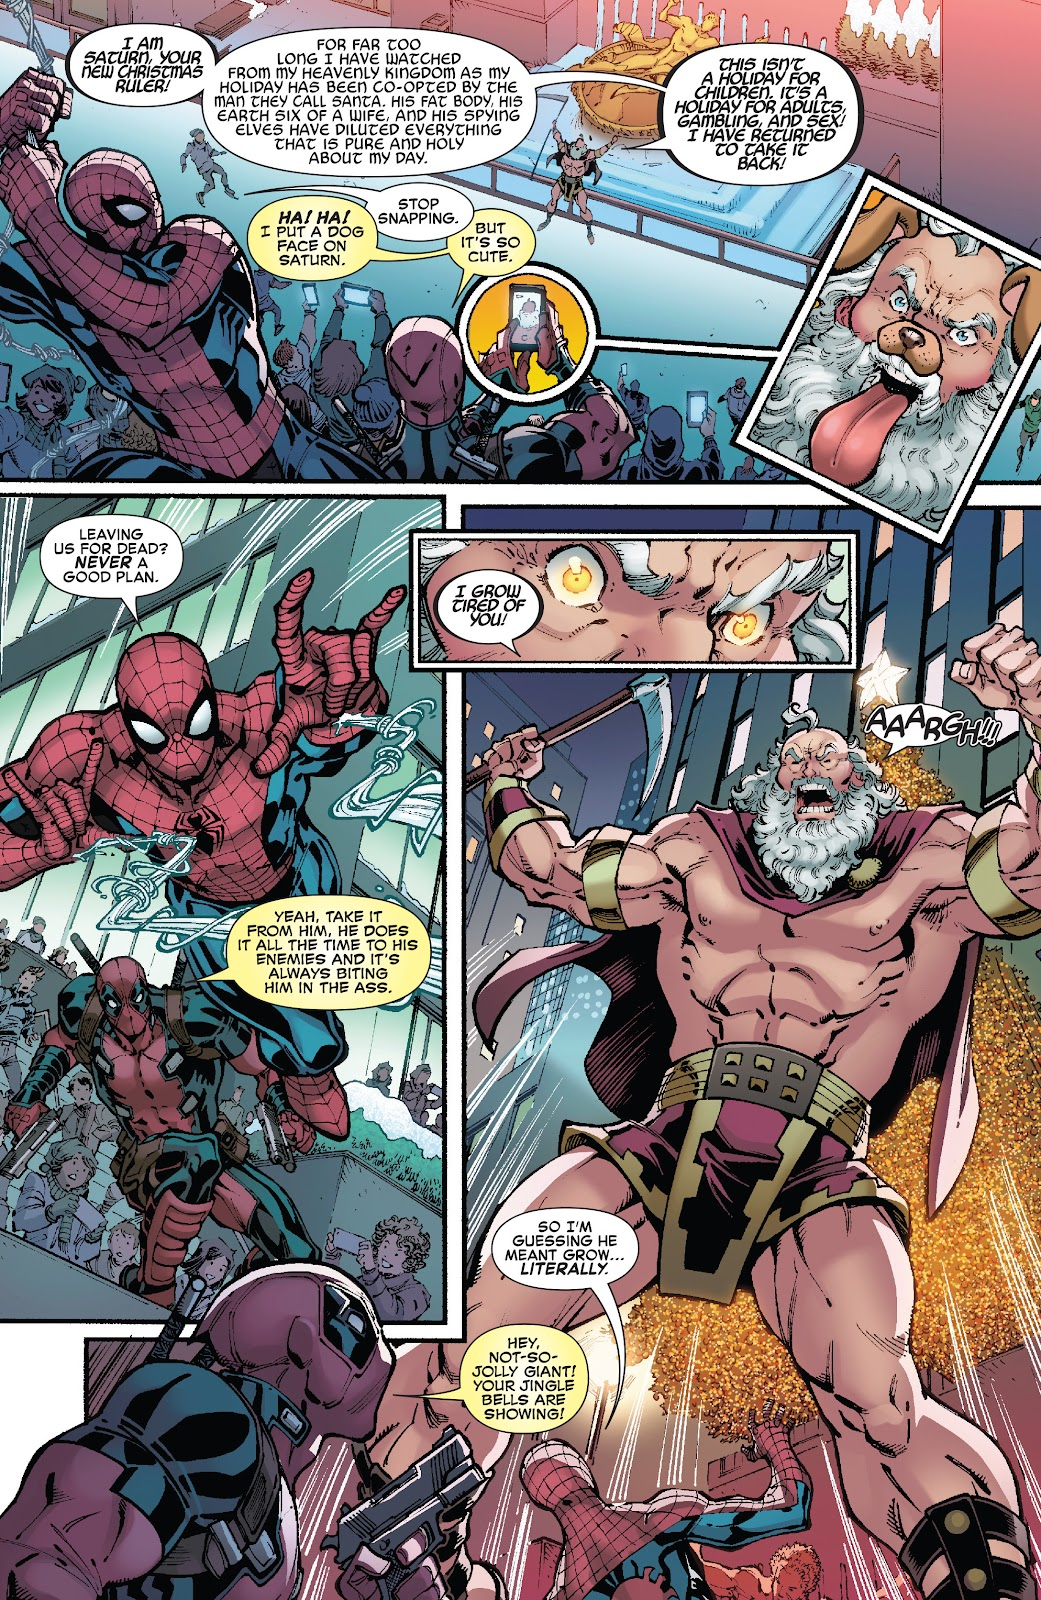 Spider-Man/Deadpool 12 Page 14 Spider-Man: 11 Most Wholesome Comic Moments